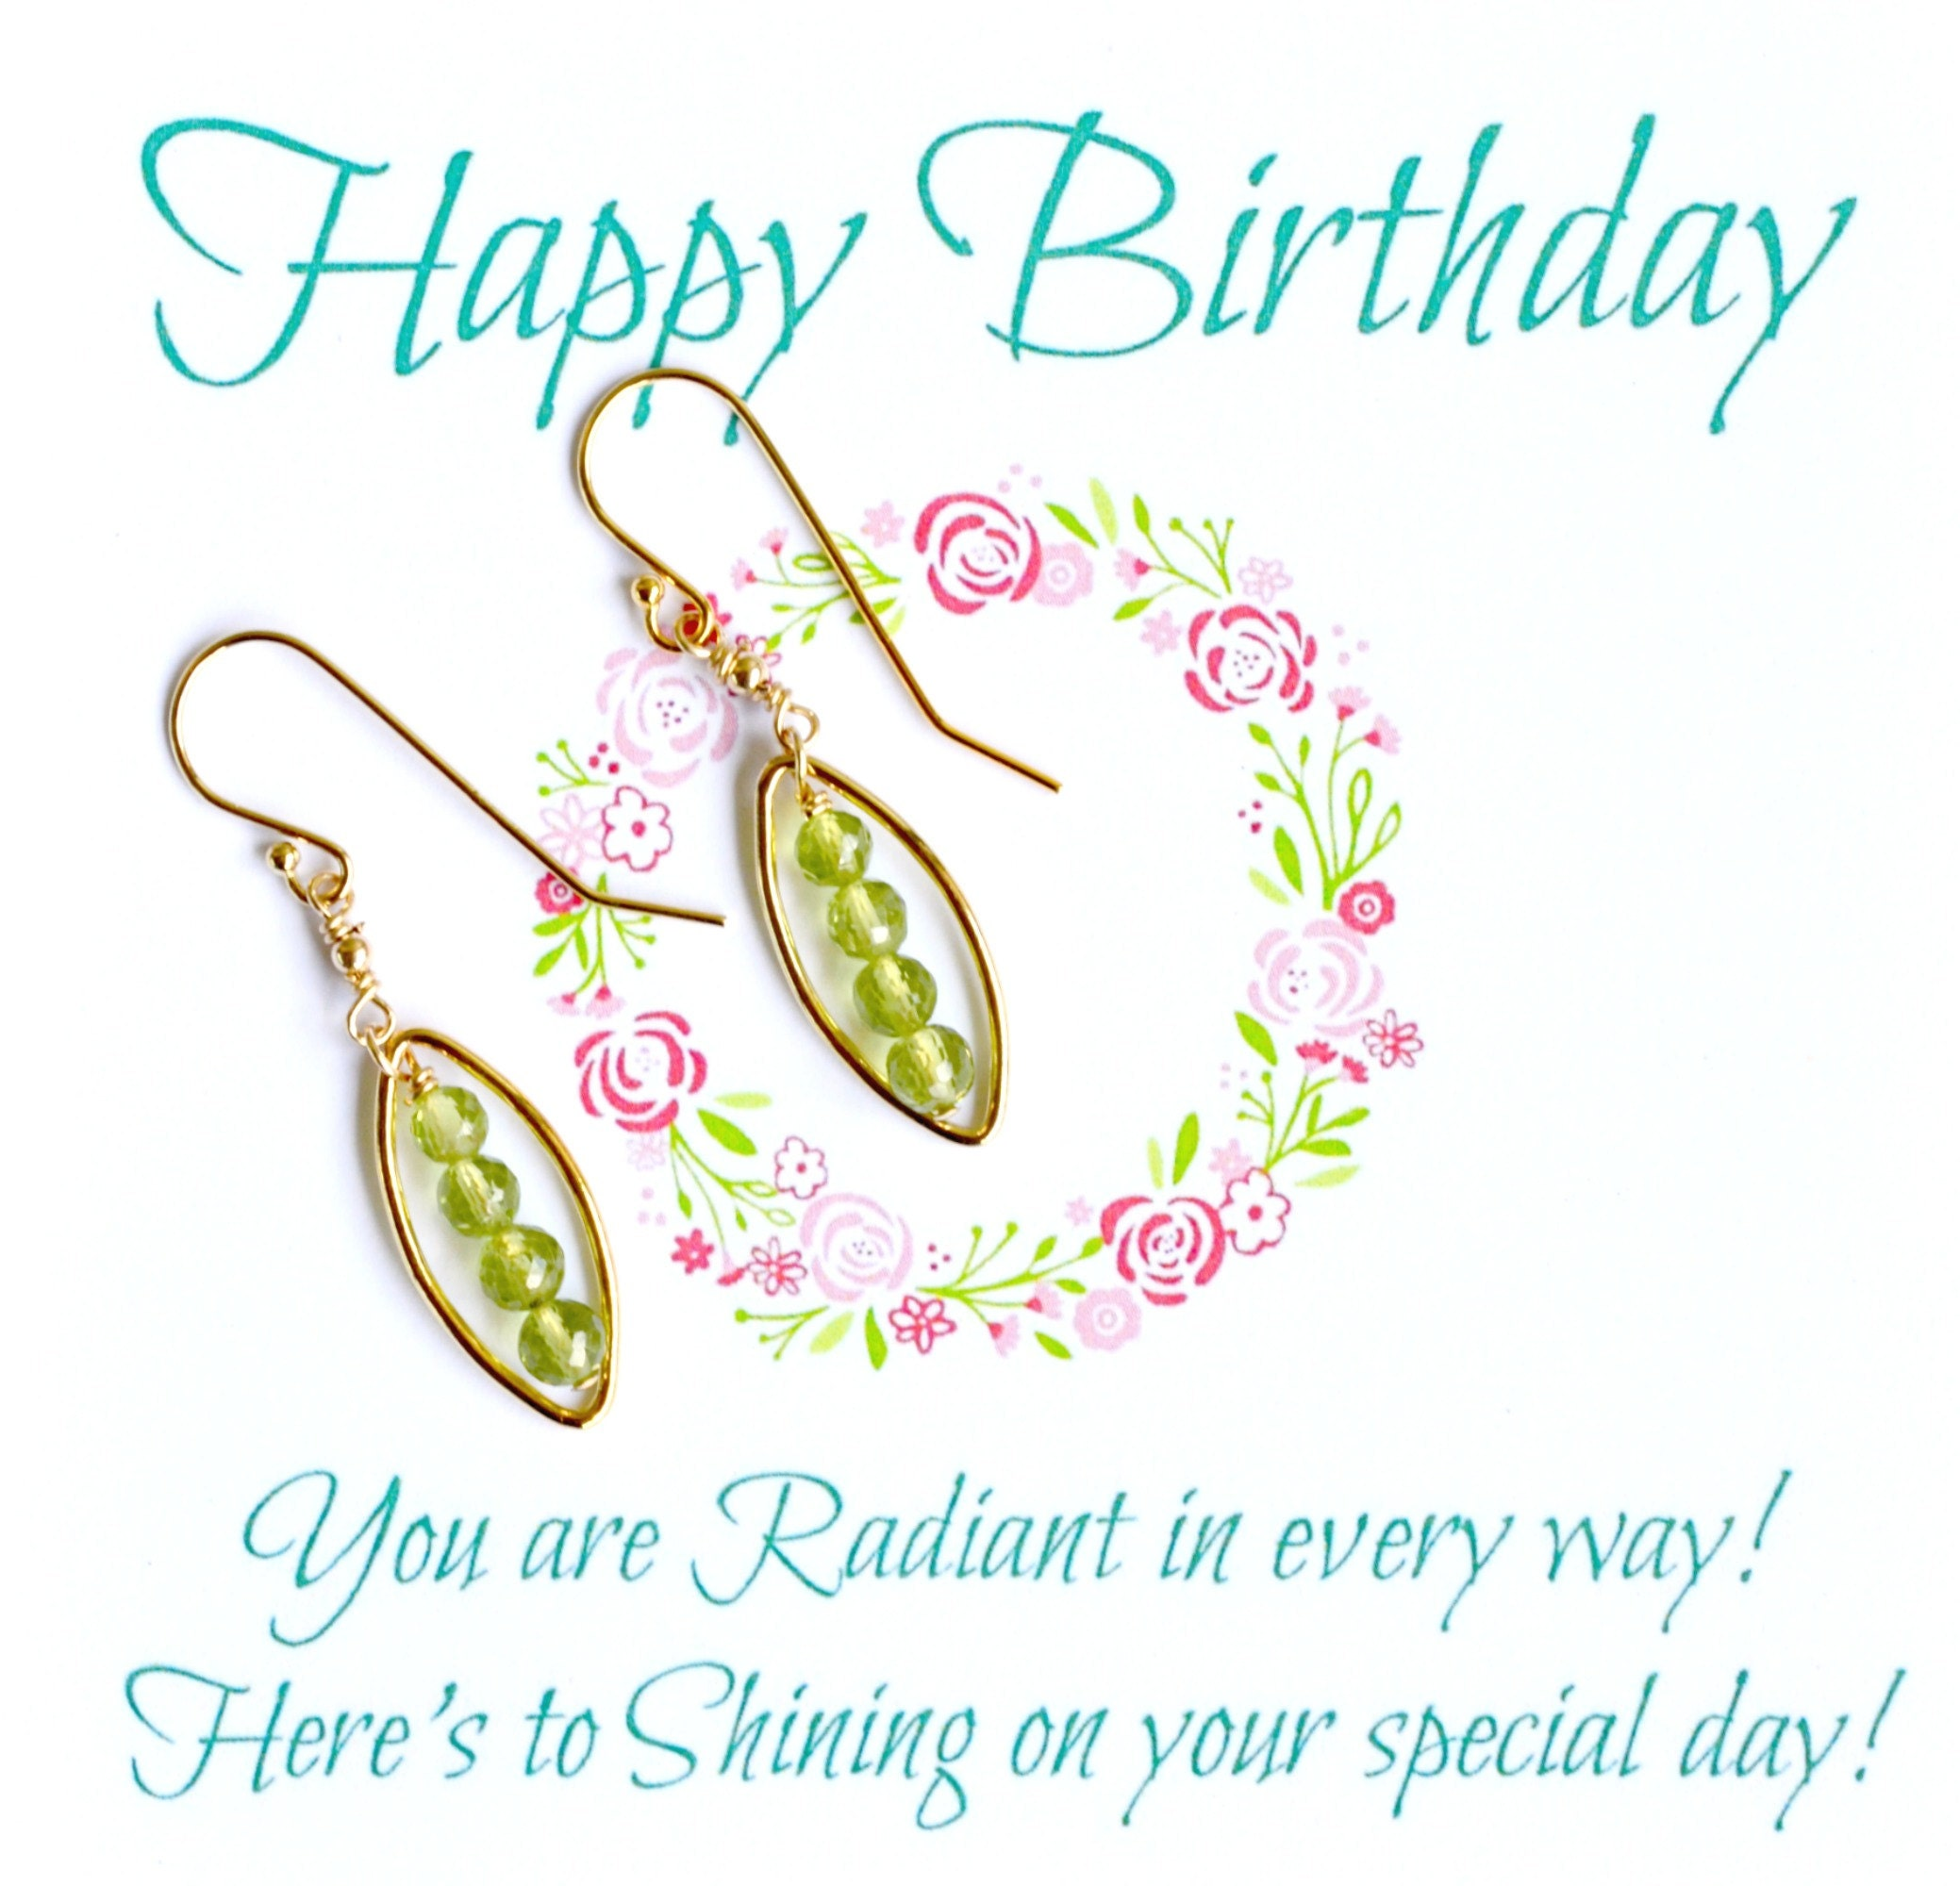 Say an August Happy Birthday with Peridot Jewelry by Barbara Sophia here at Gemstone Jewelry Gifts